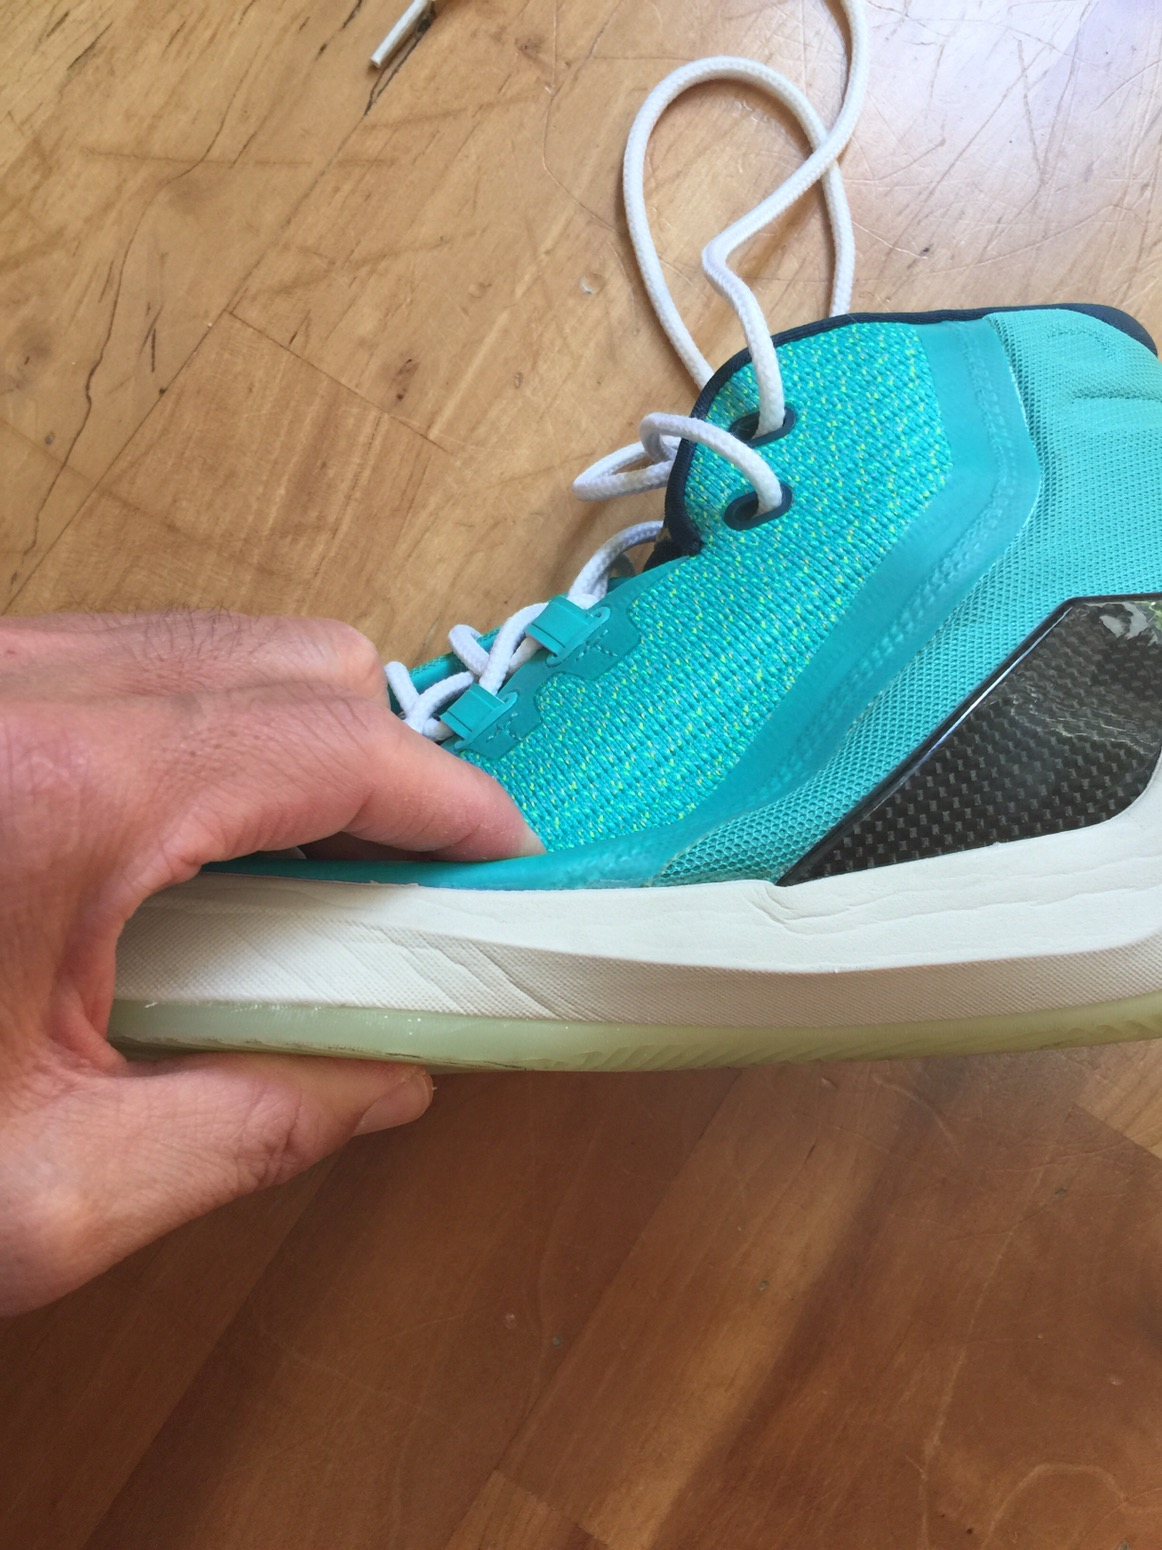 76c0d6857 stephen curry shoes 5 39 cheap   OFF74% The Largest Catalog Discounts